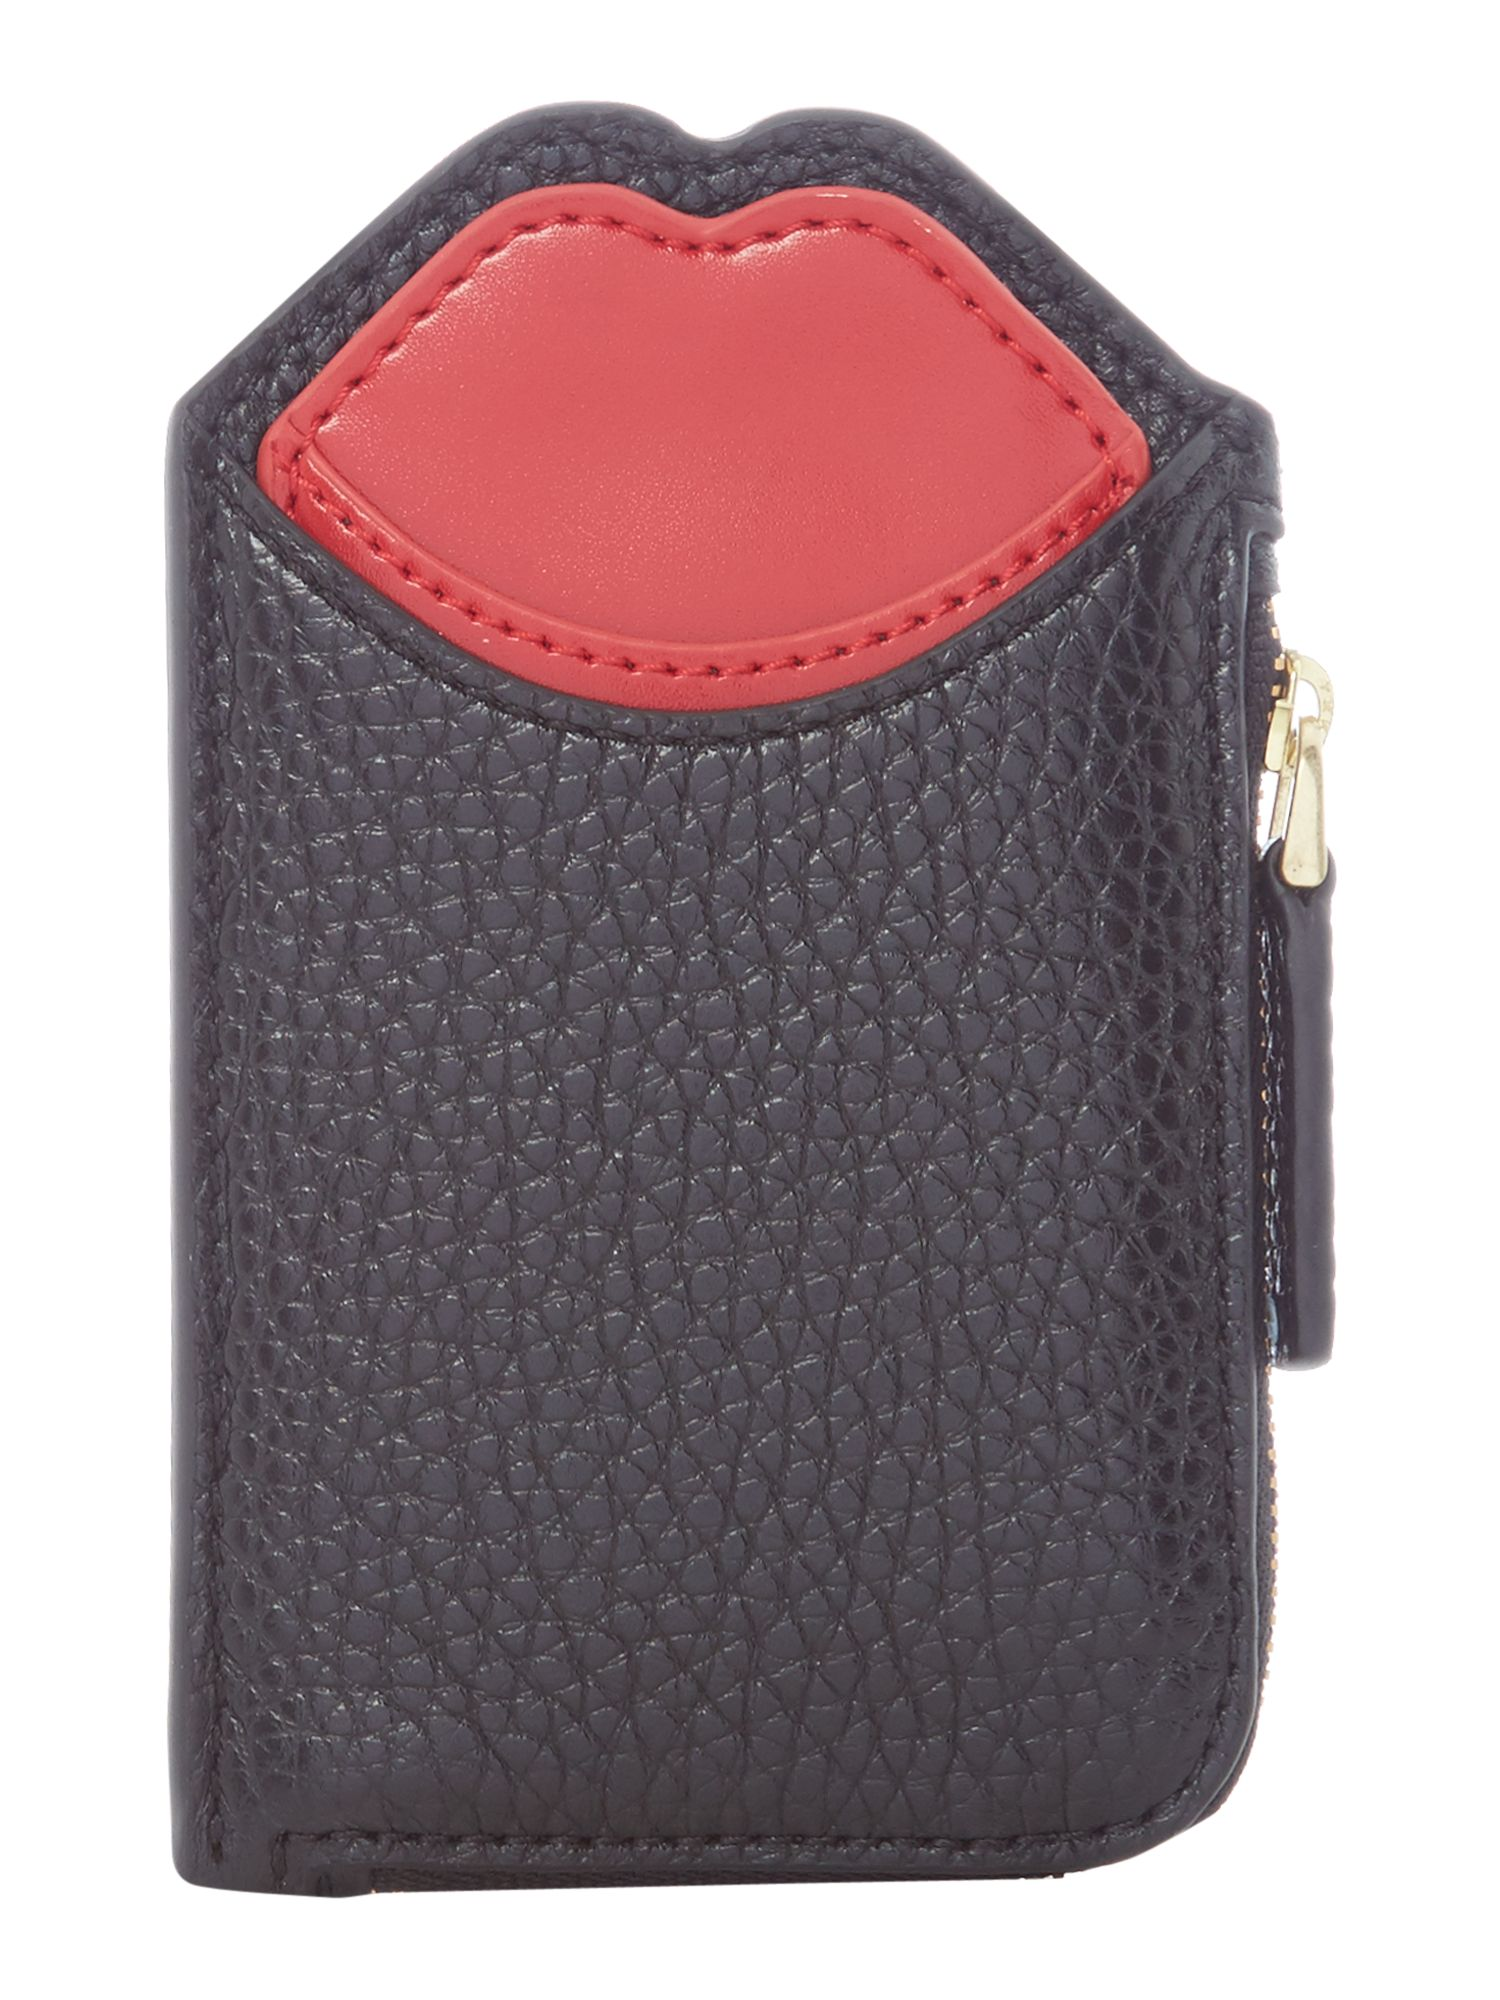 Lulu Guinness Pop up lip lilianna zip oyster purse, Black